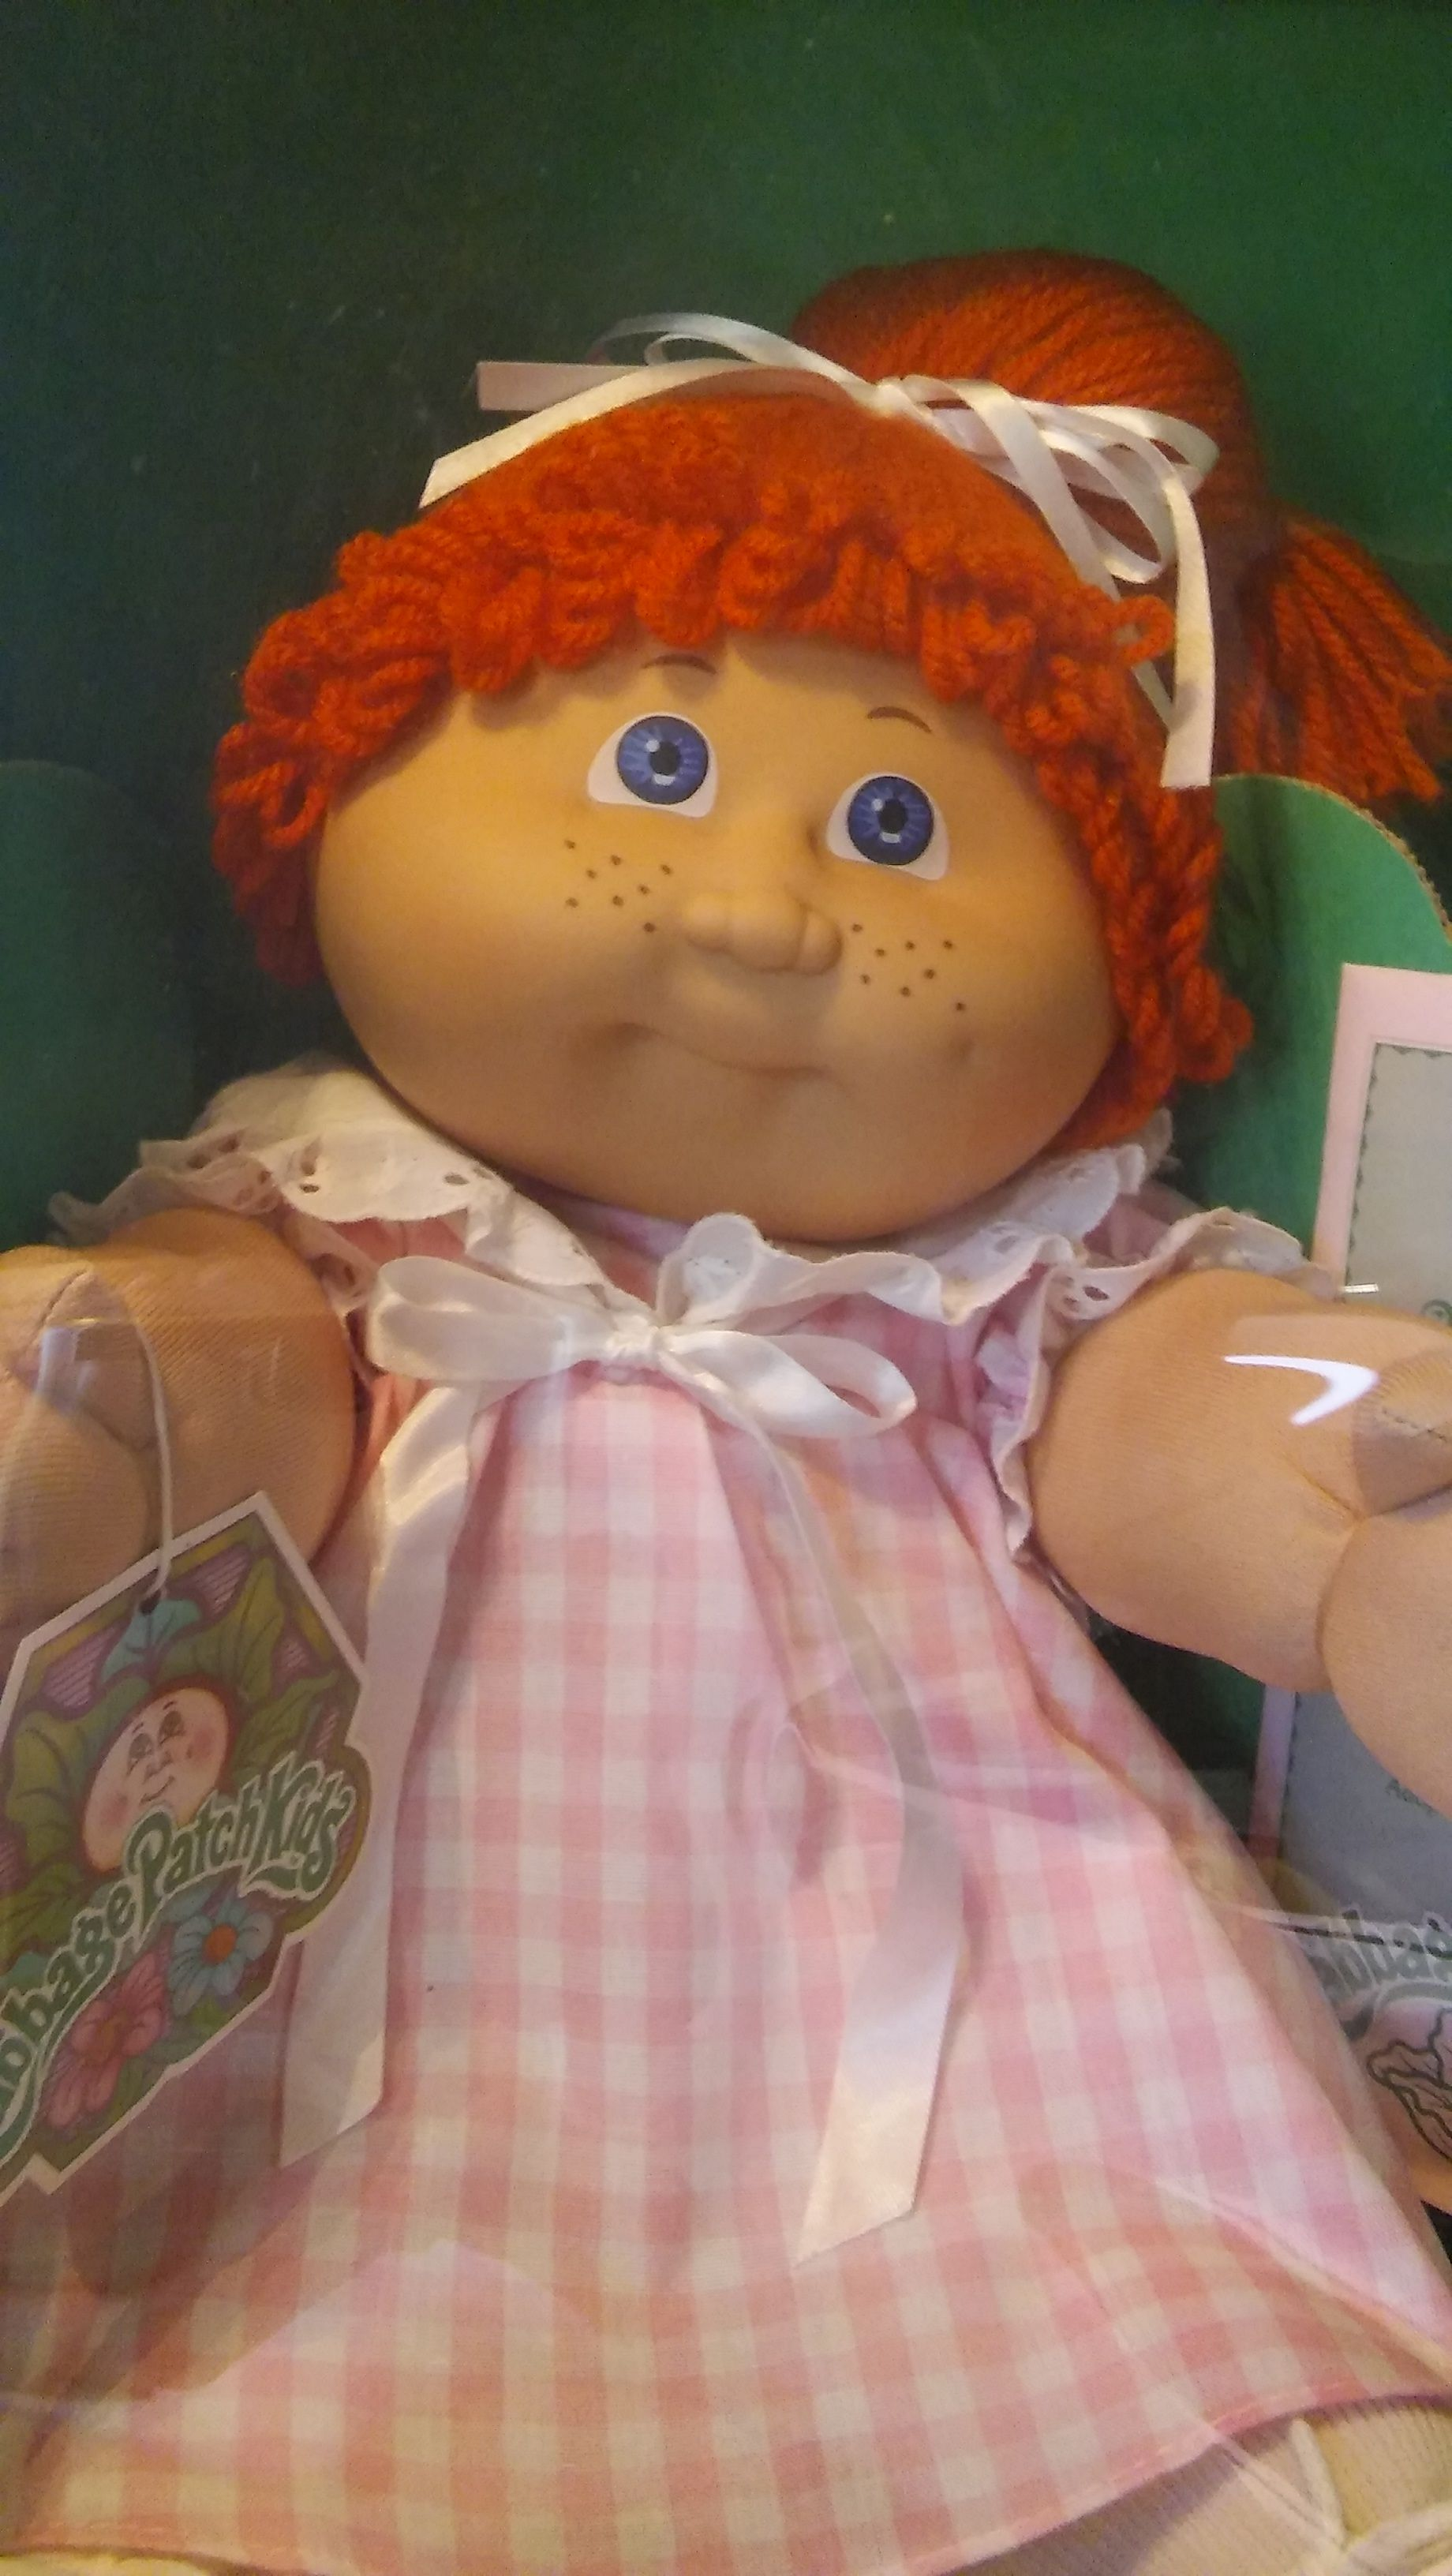 1985 Cabbage Patch Kid Know As Kasmira Myra She Has A Red Pony Tail Blue Eyes And Adorable Cabbage Patch Kids Dolls Cabbage Patch Dolls Cabbage Patch Kids